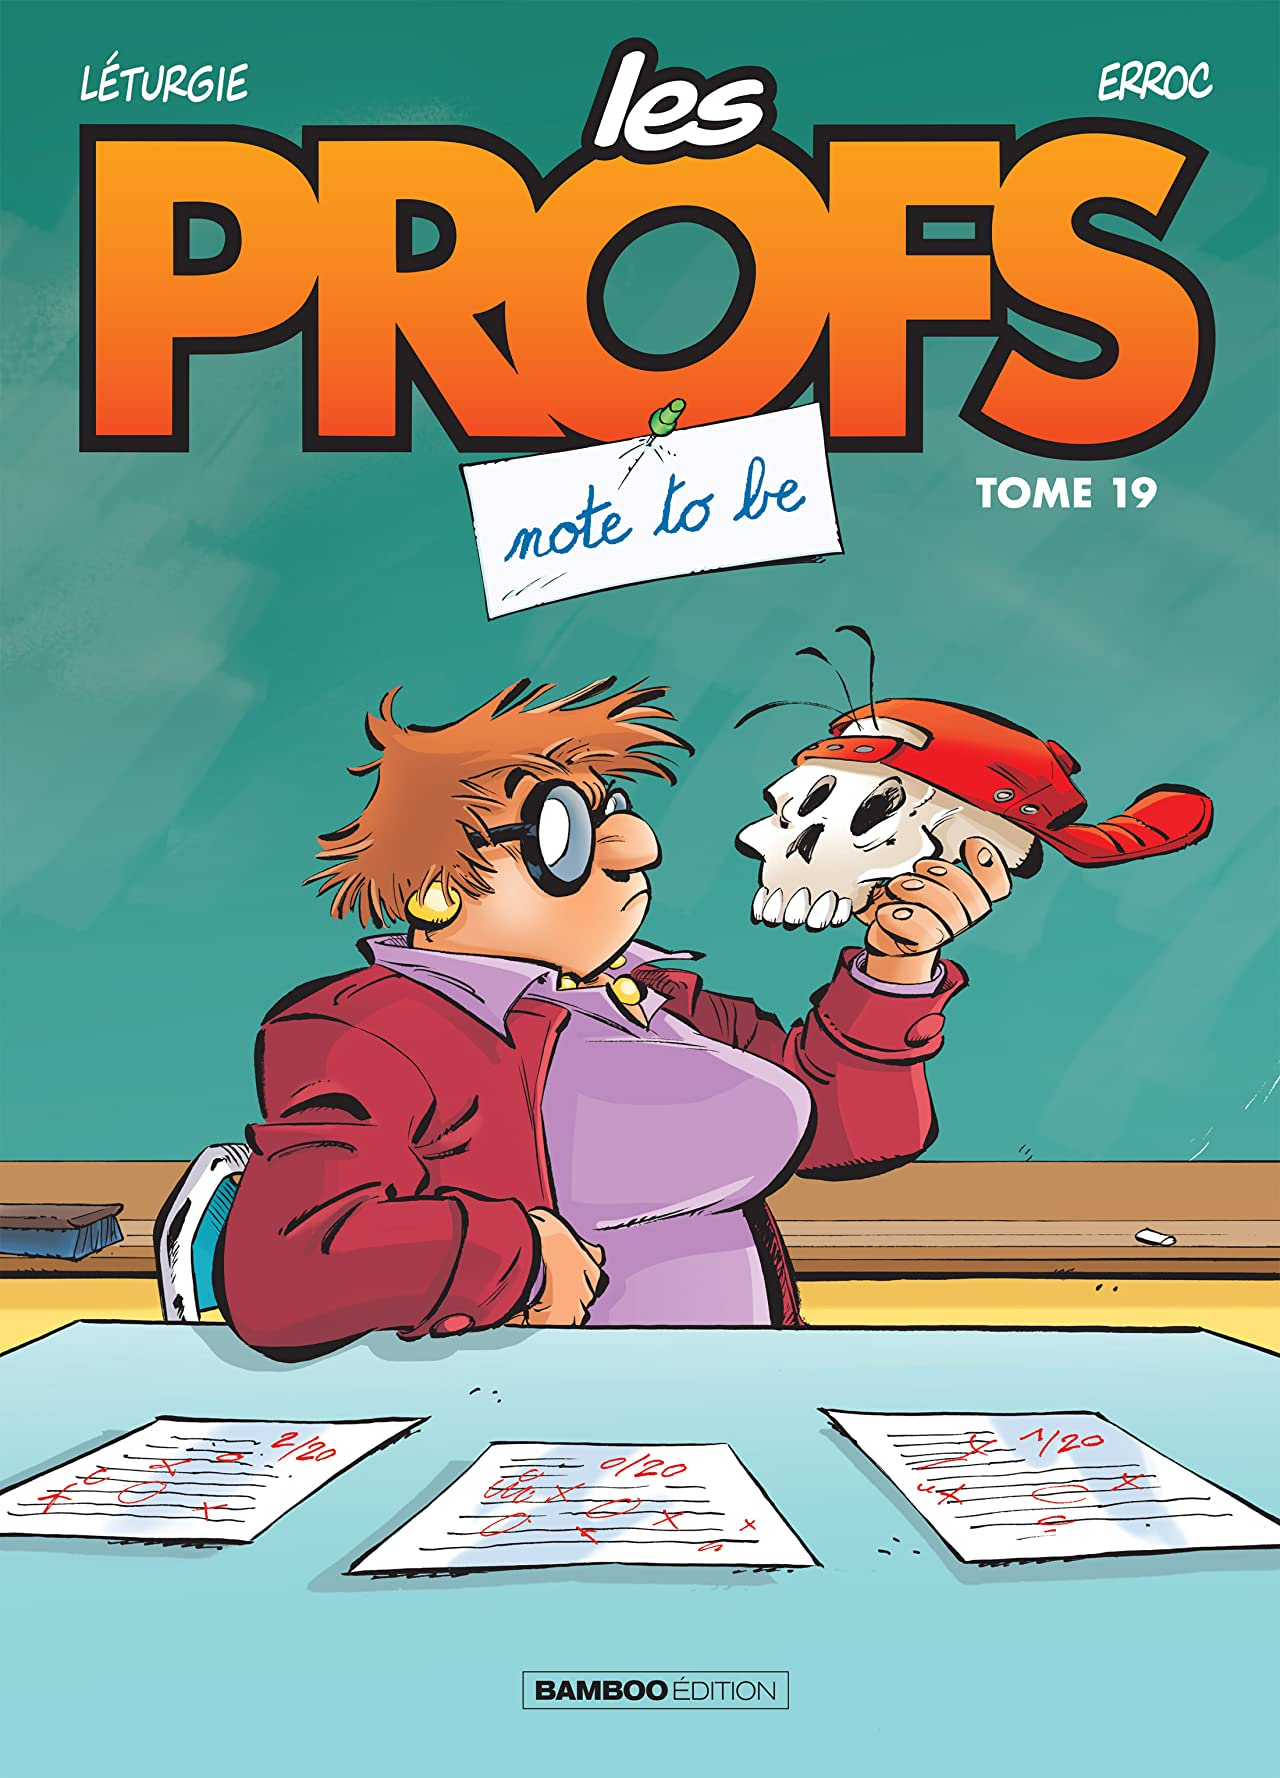 Les Profs Vol. 19: Note to be